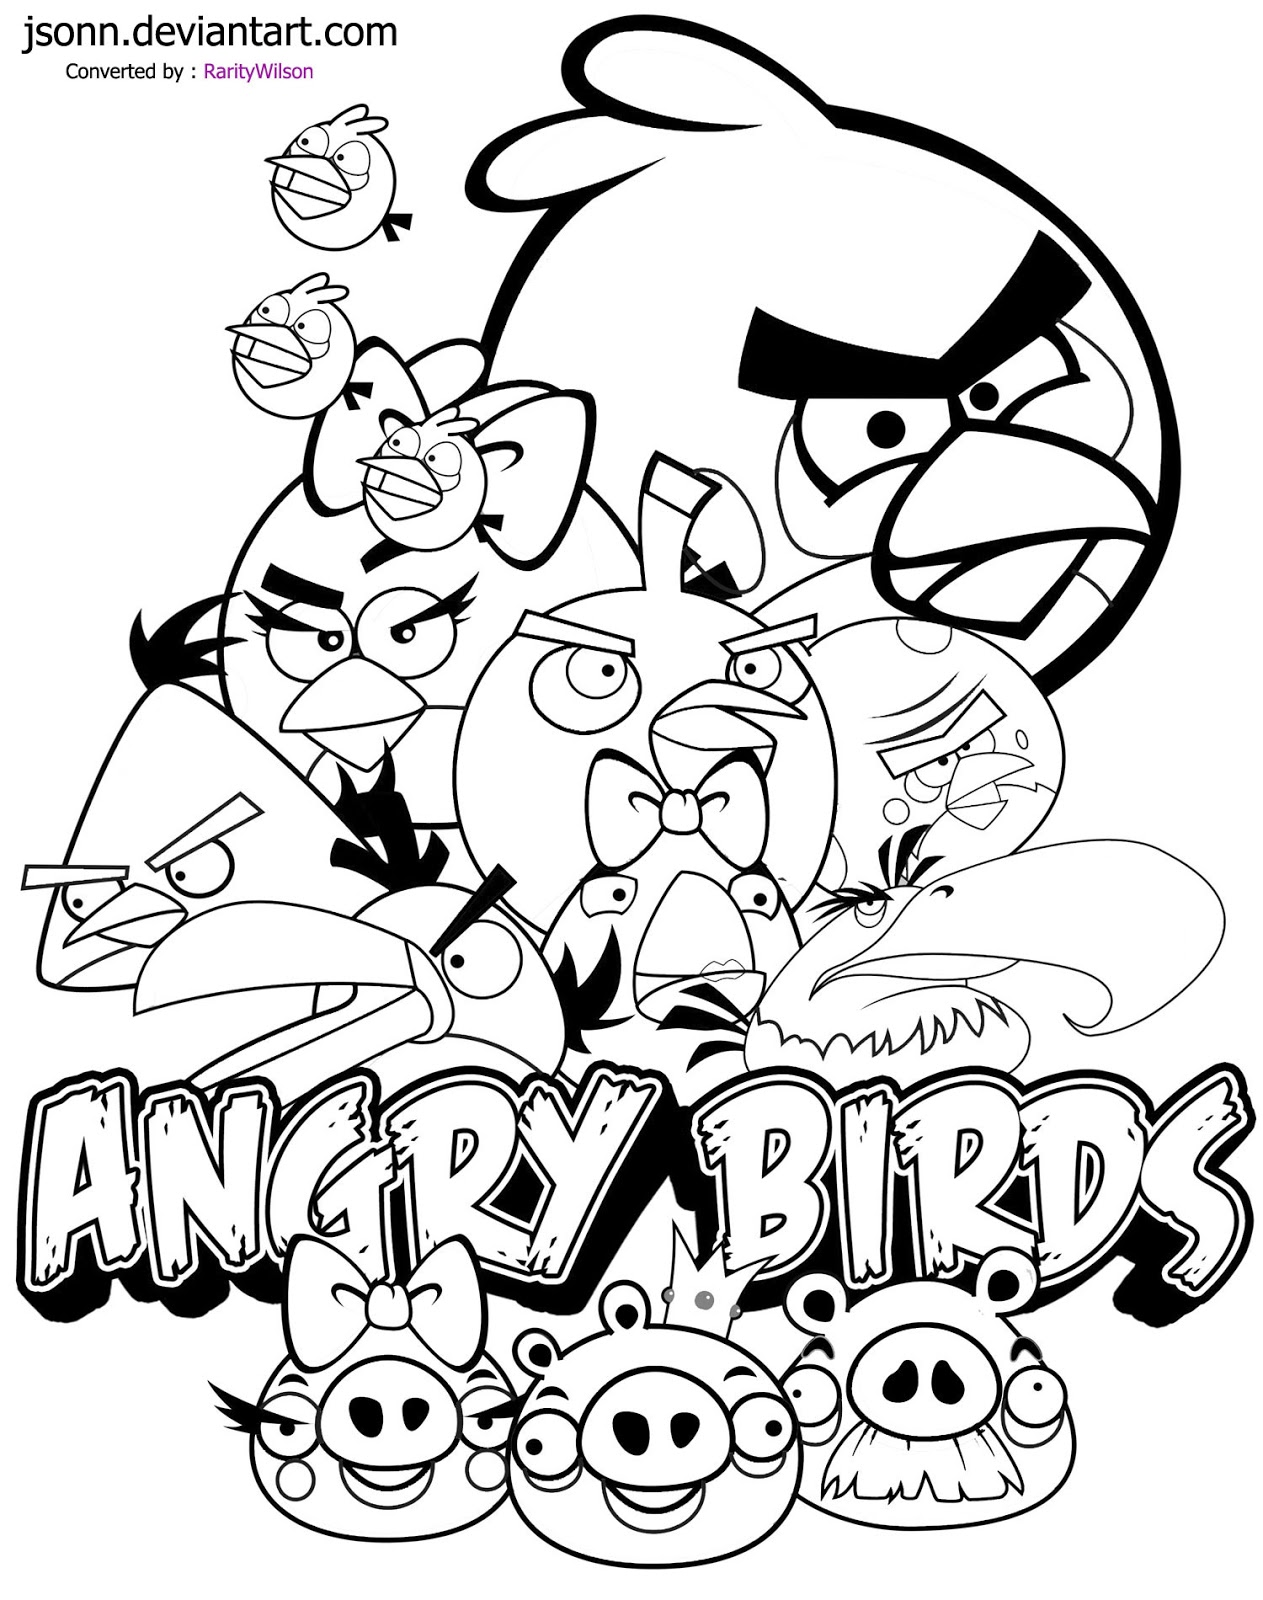 Clean image regarding angry birds printable coloring pages